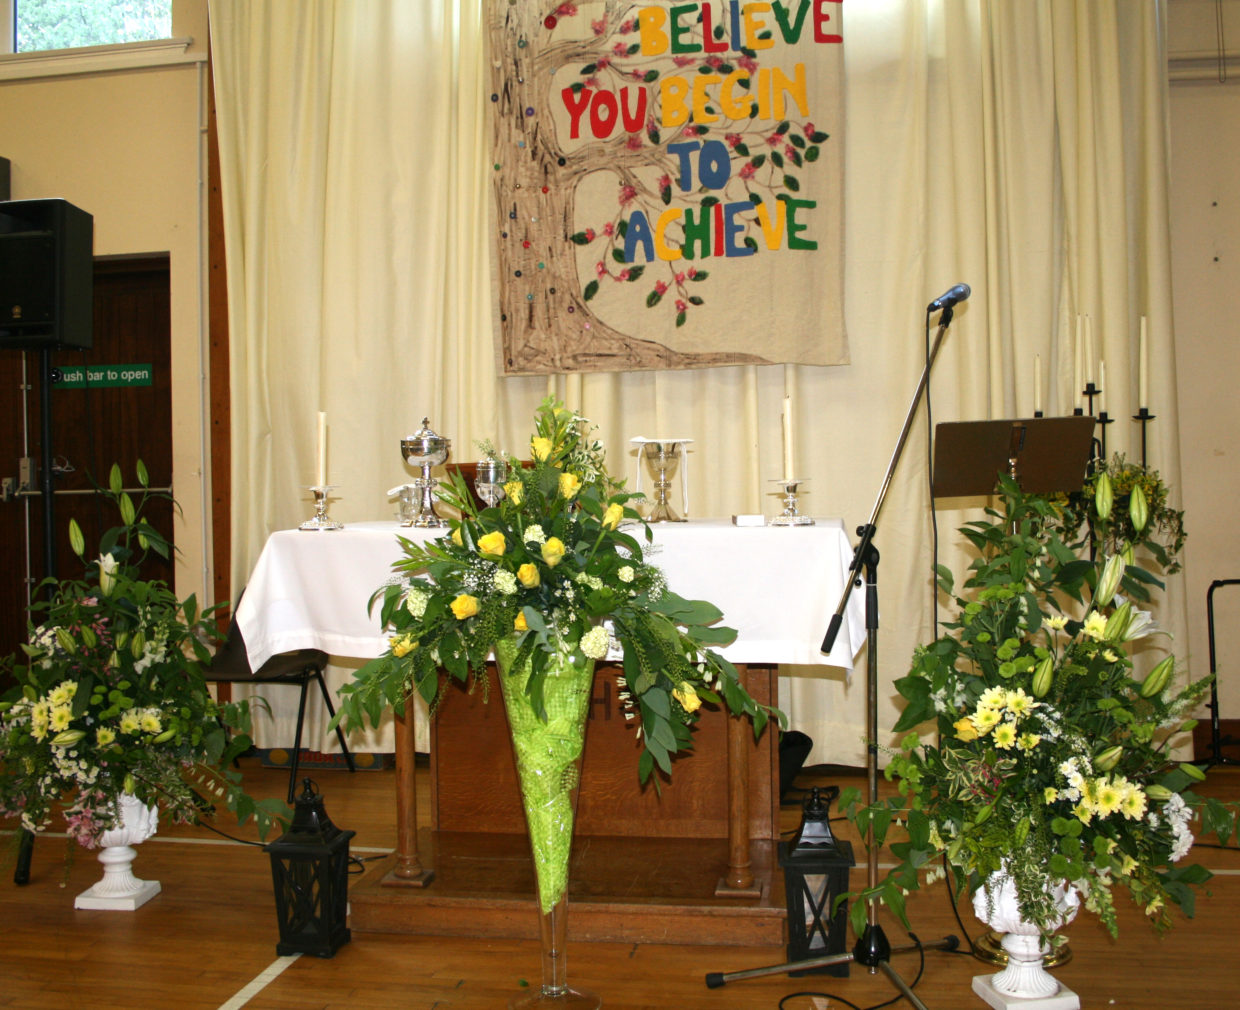 This photograph represents the tranquillity and serenity of our beautifully prepared alters, hanging tapestry, and floral arrangements, prior to the commencement of our Graduation Mass.